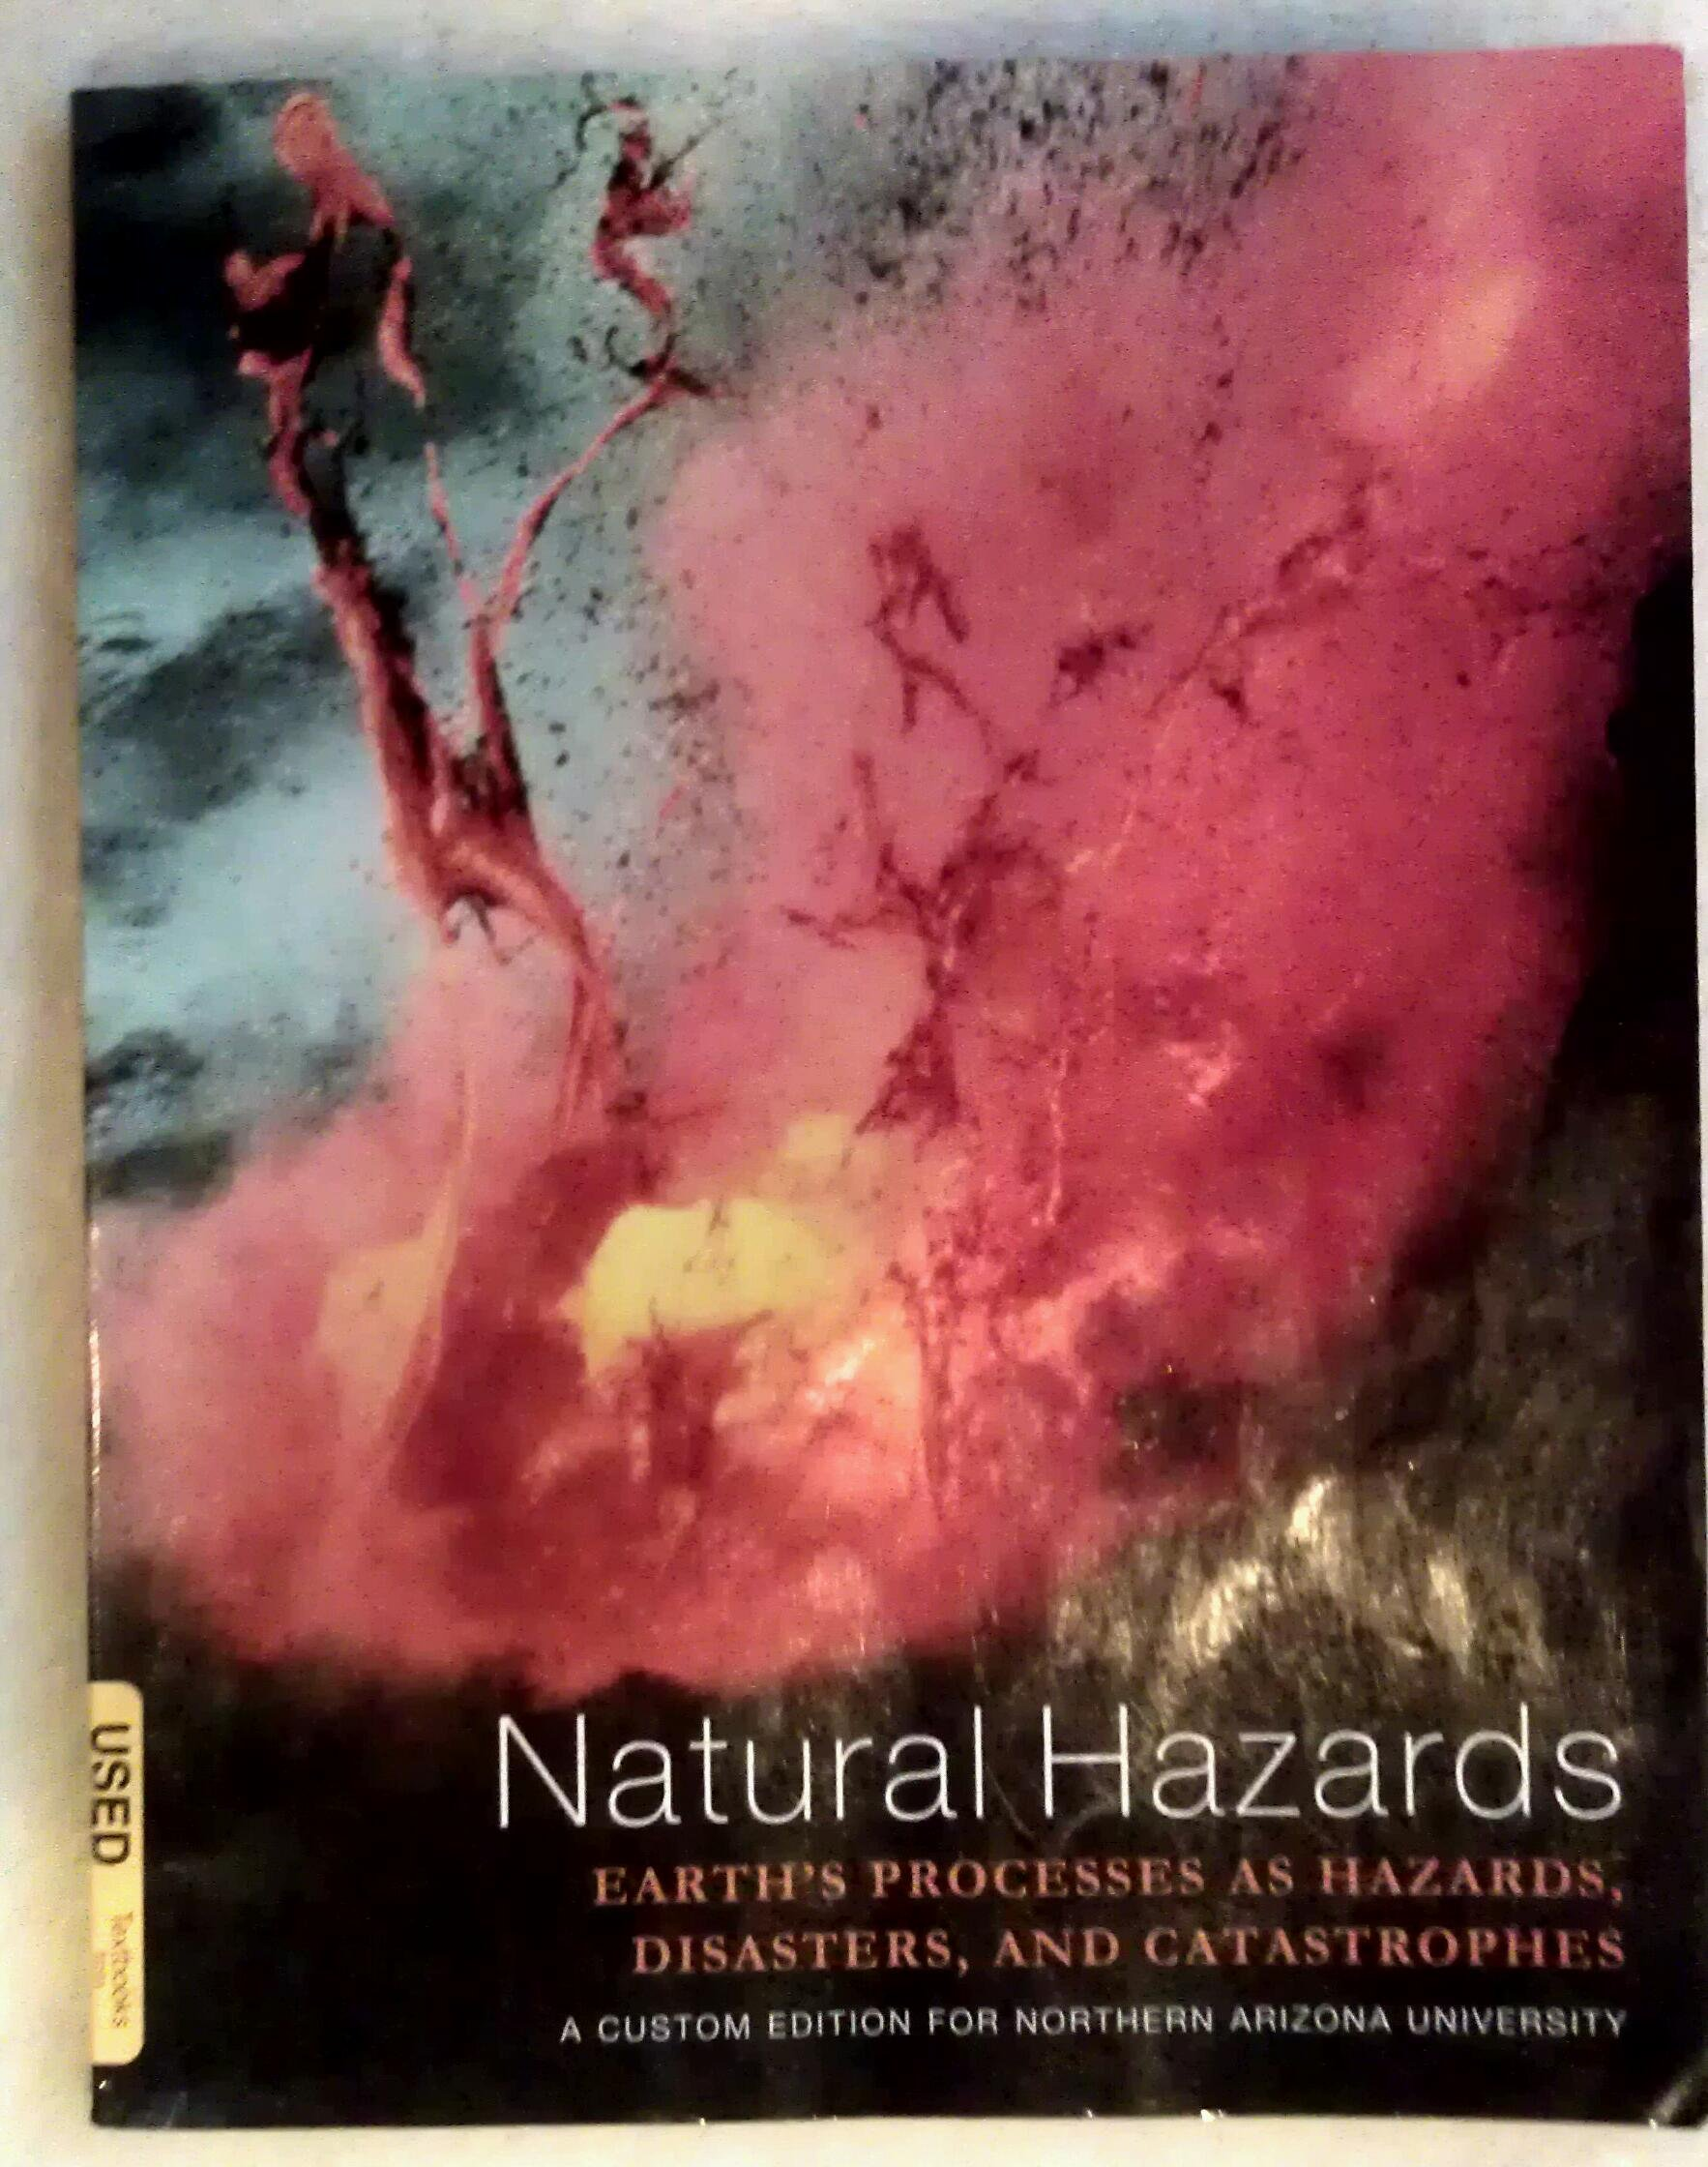 Download Natural Hazards: Earth's Processes As Hazards, Disasters, and Catastrophes (A Custom Edition for Northern Arizona University) pdf epub